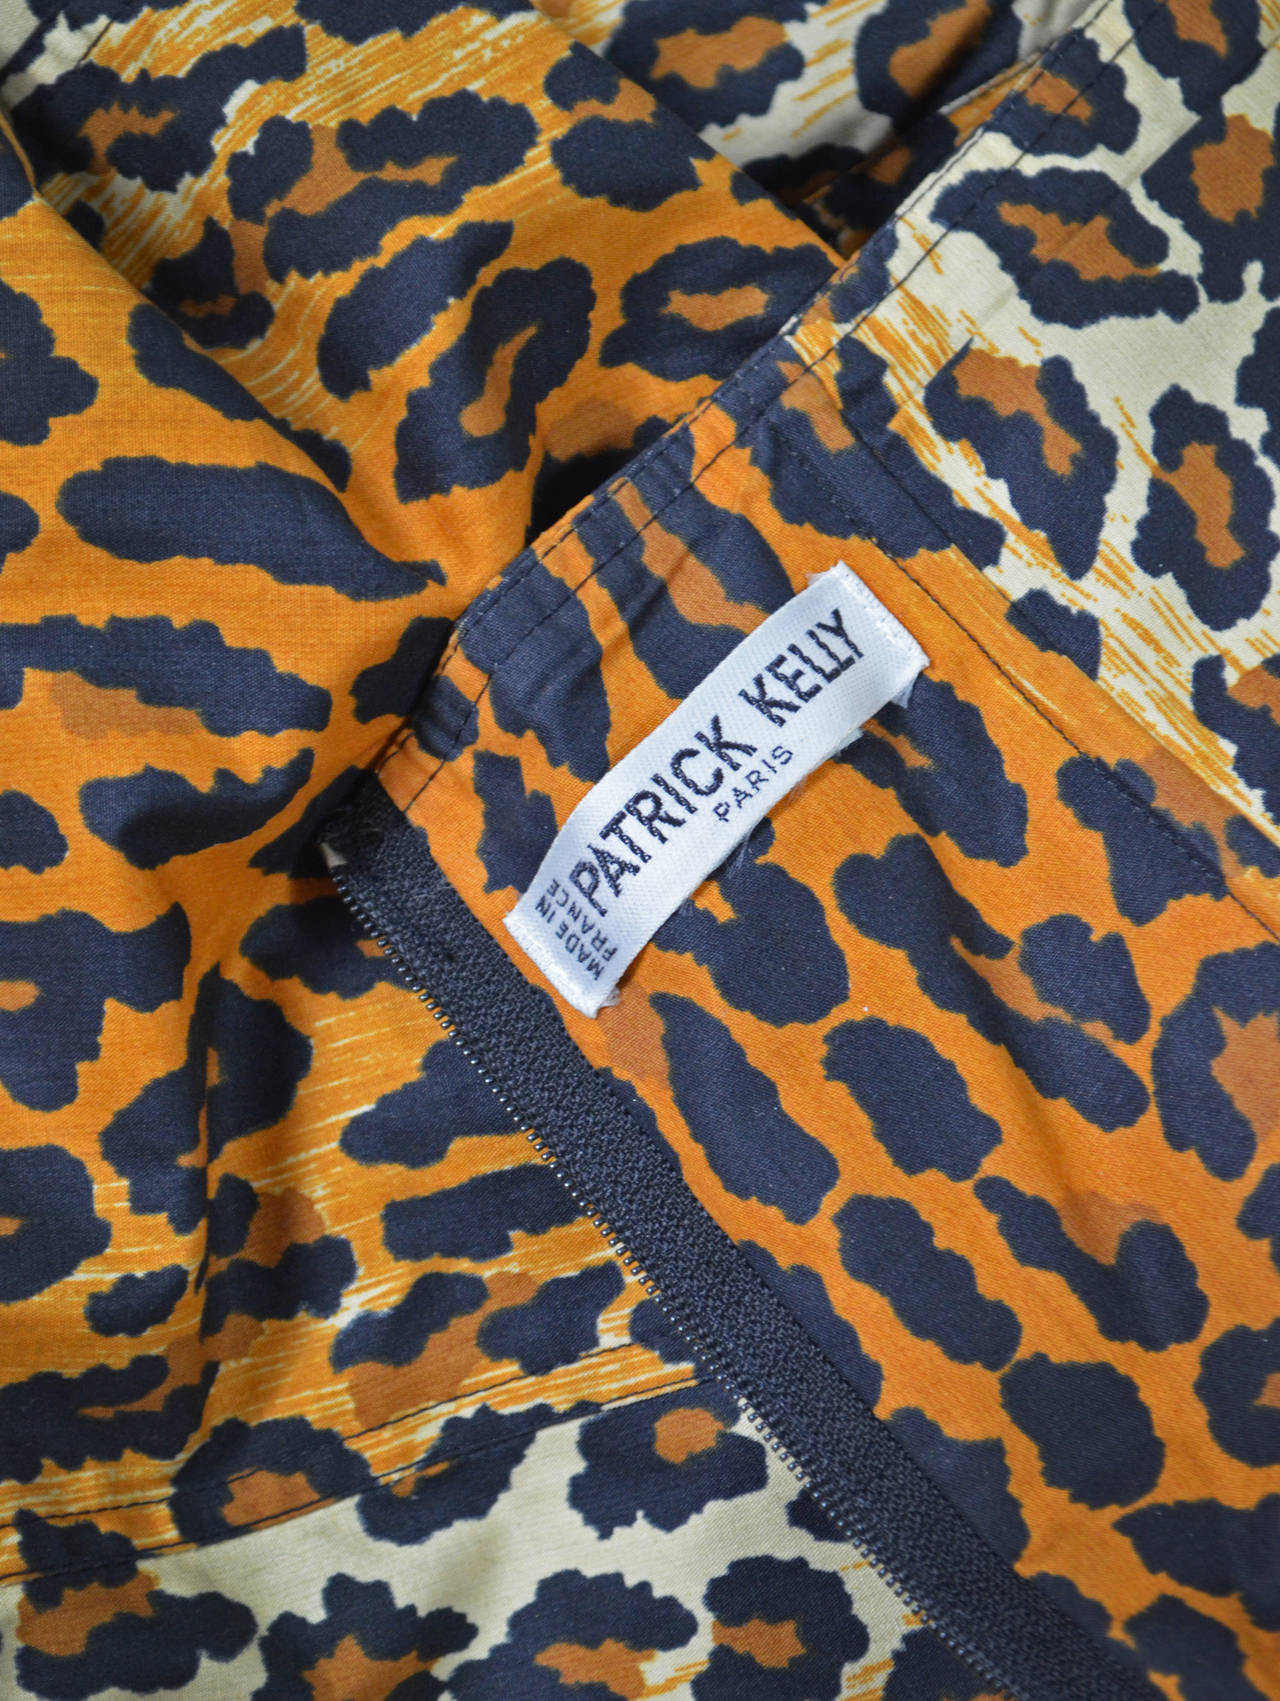 1989 Patrick Kelly Cocktail Dress For Sale 1